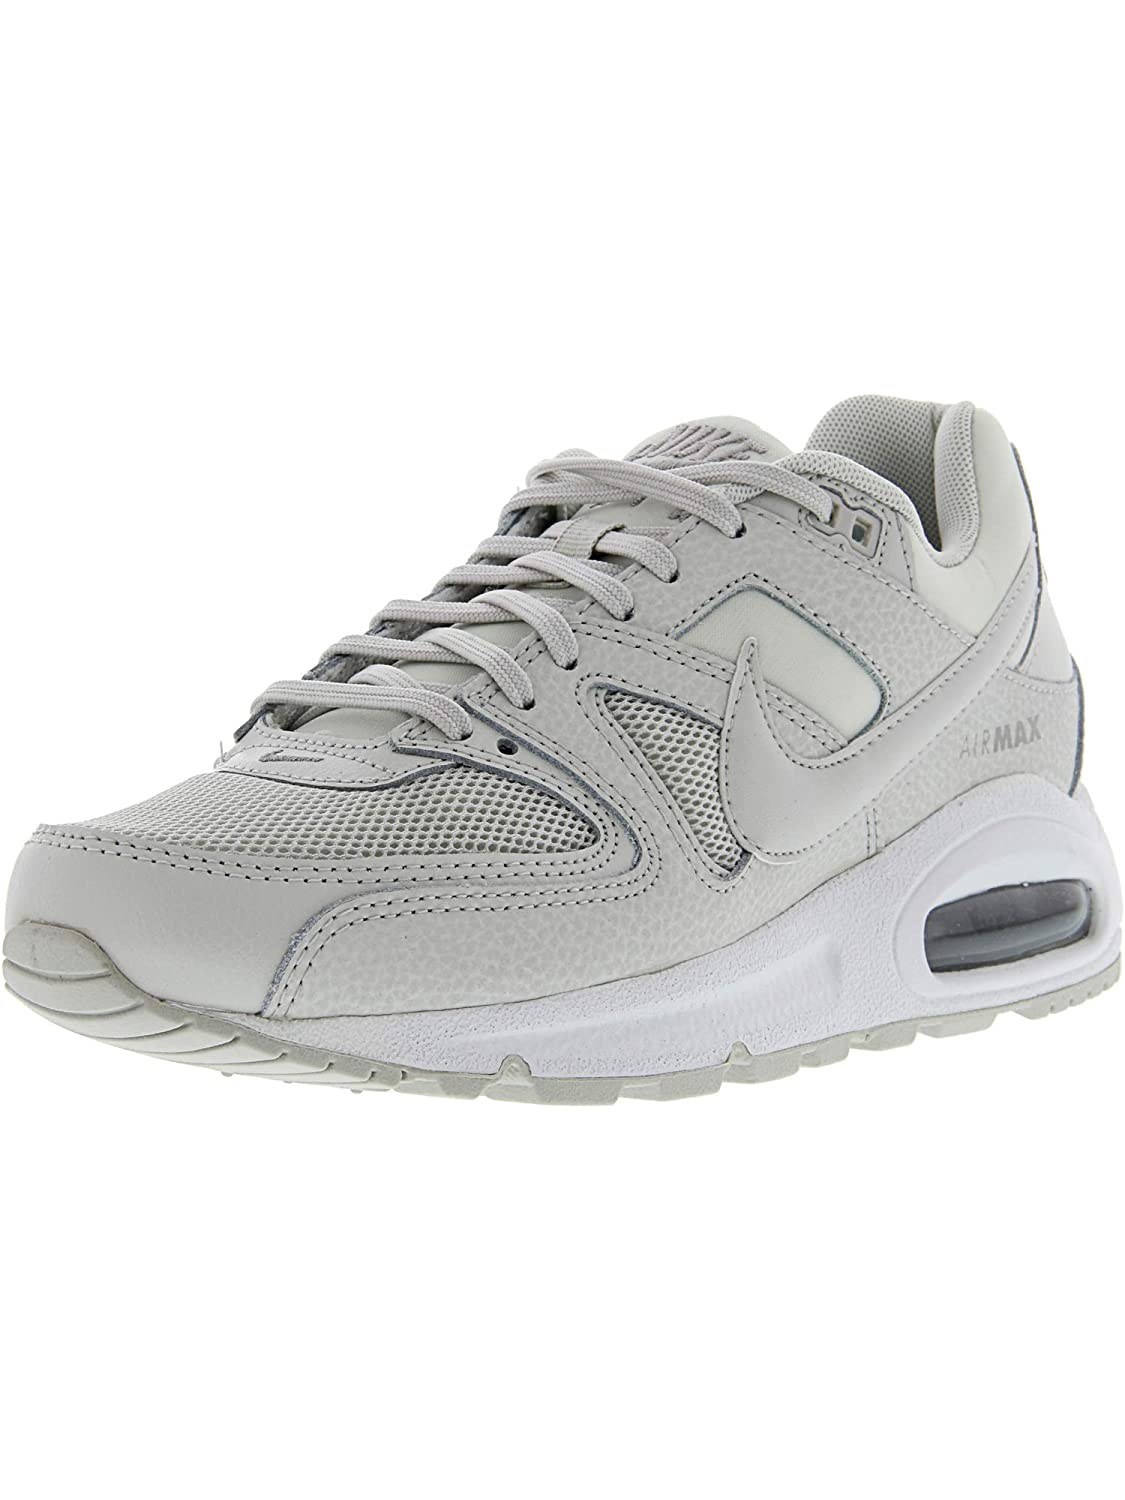 Beige (Light Bone Light Bone blanc Lt Iron Ore 018) Nike 397690-018, Chaussures de Trail Femme 41 EU